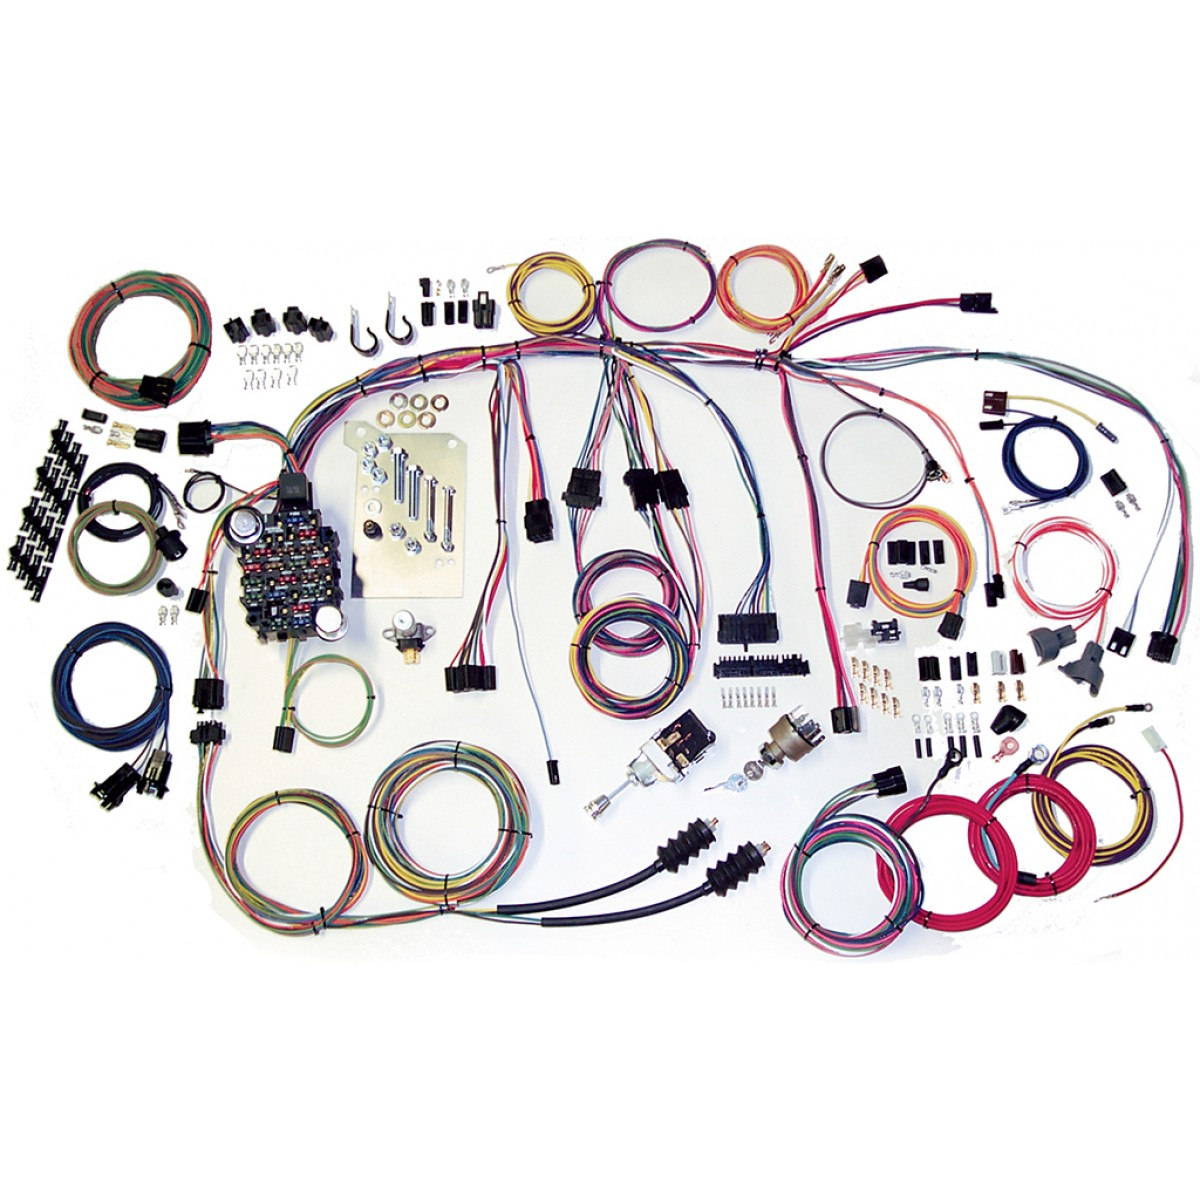 60 66 chevy truck wiring harness kit 1960 1966 chevy truck part 500560 chevy c10 c20 wiring harness chevy c10 wiring harness complete wiring harness kit 1960 1966 chevy truck wiring harness at soozxer.org